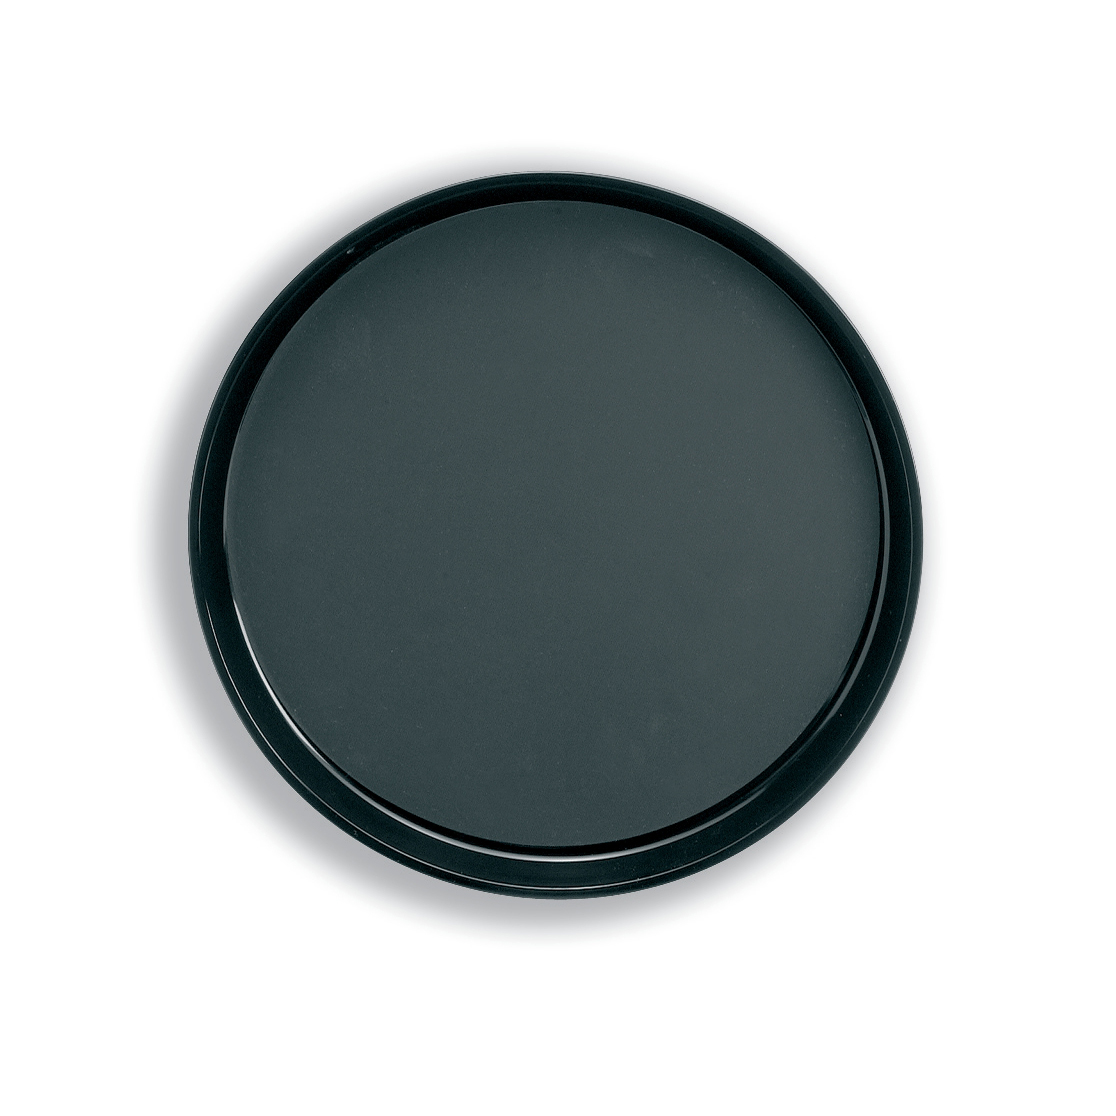 Tray Non Slip Polypropylene Dishwasher Safe Round Diameter 300mm Black